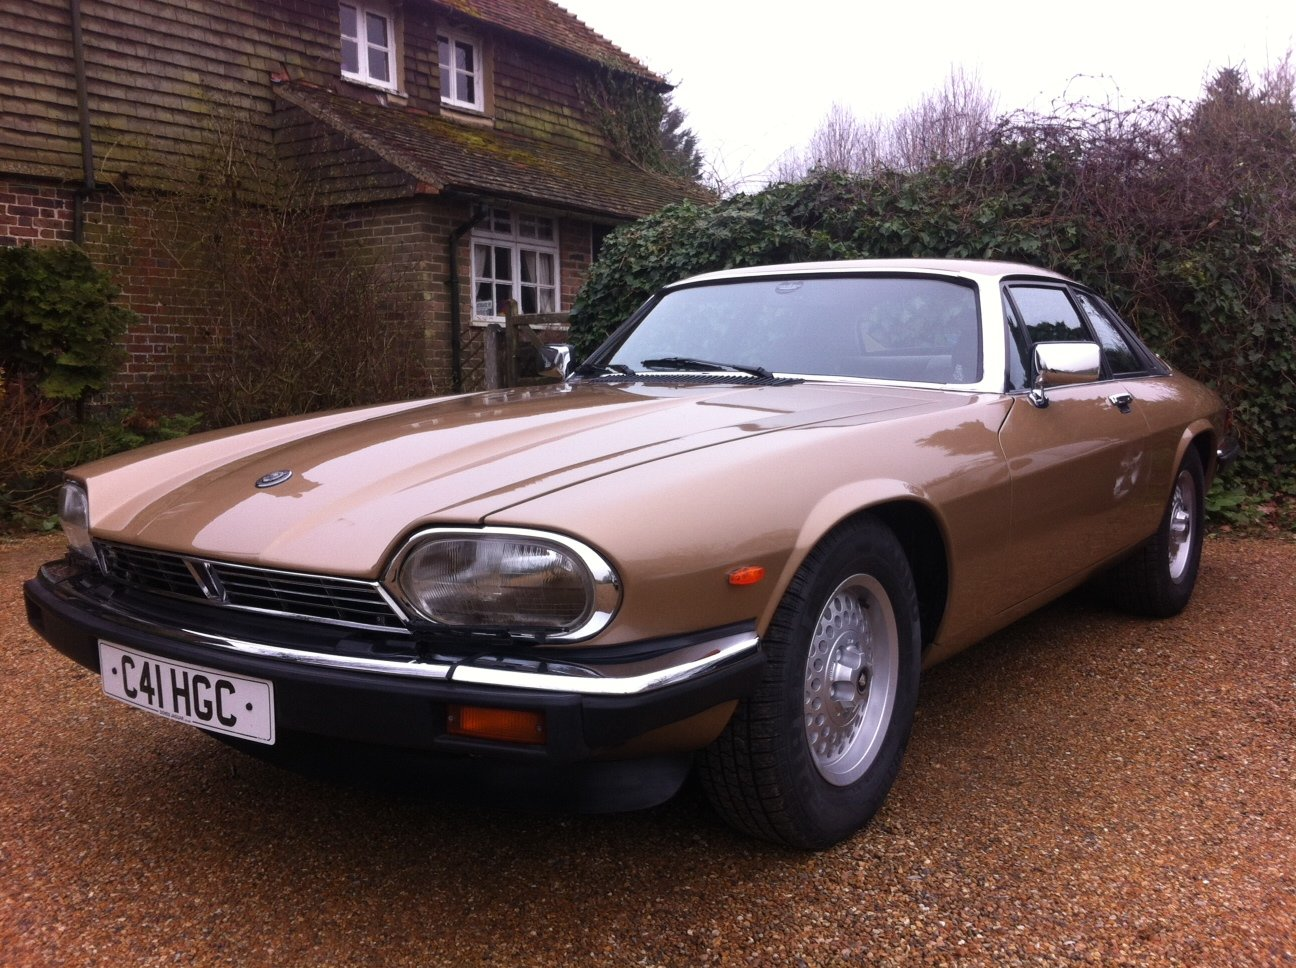 1985 Jaguar XJS 3.6 Five Speed Manual. 27,000 Miles. For Sale (picture 1 of 6)